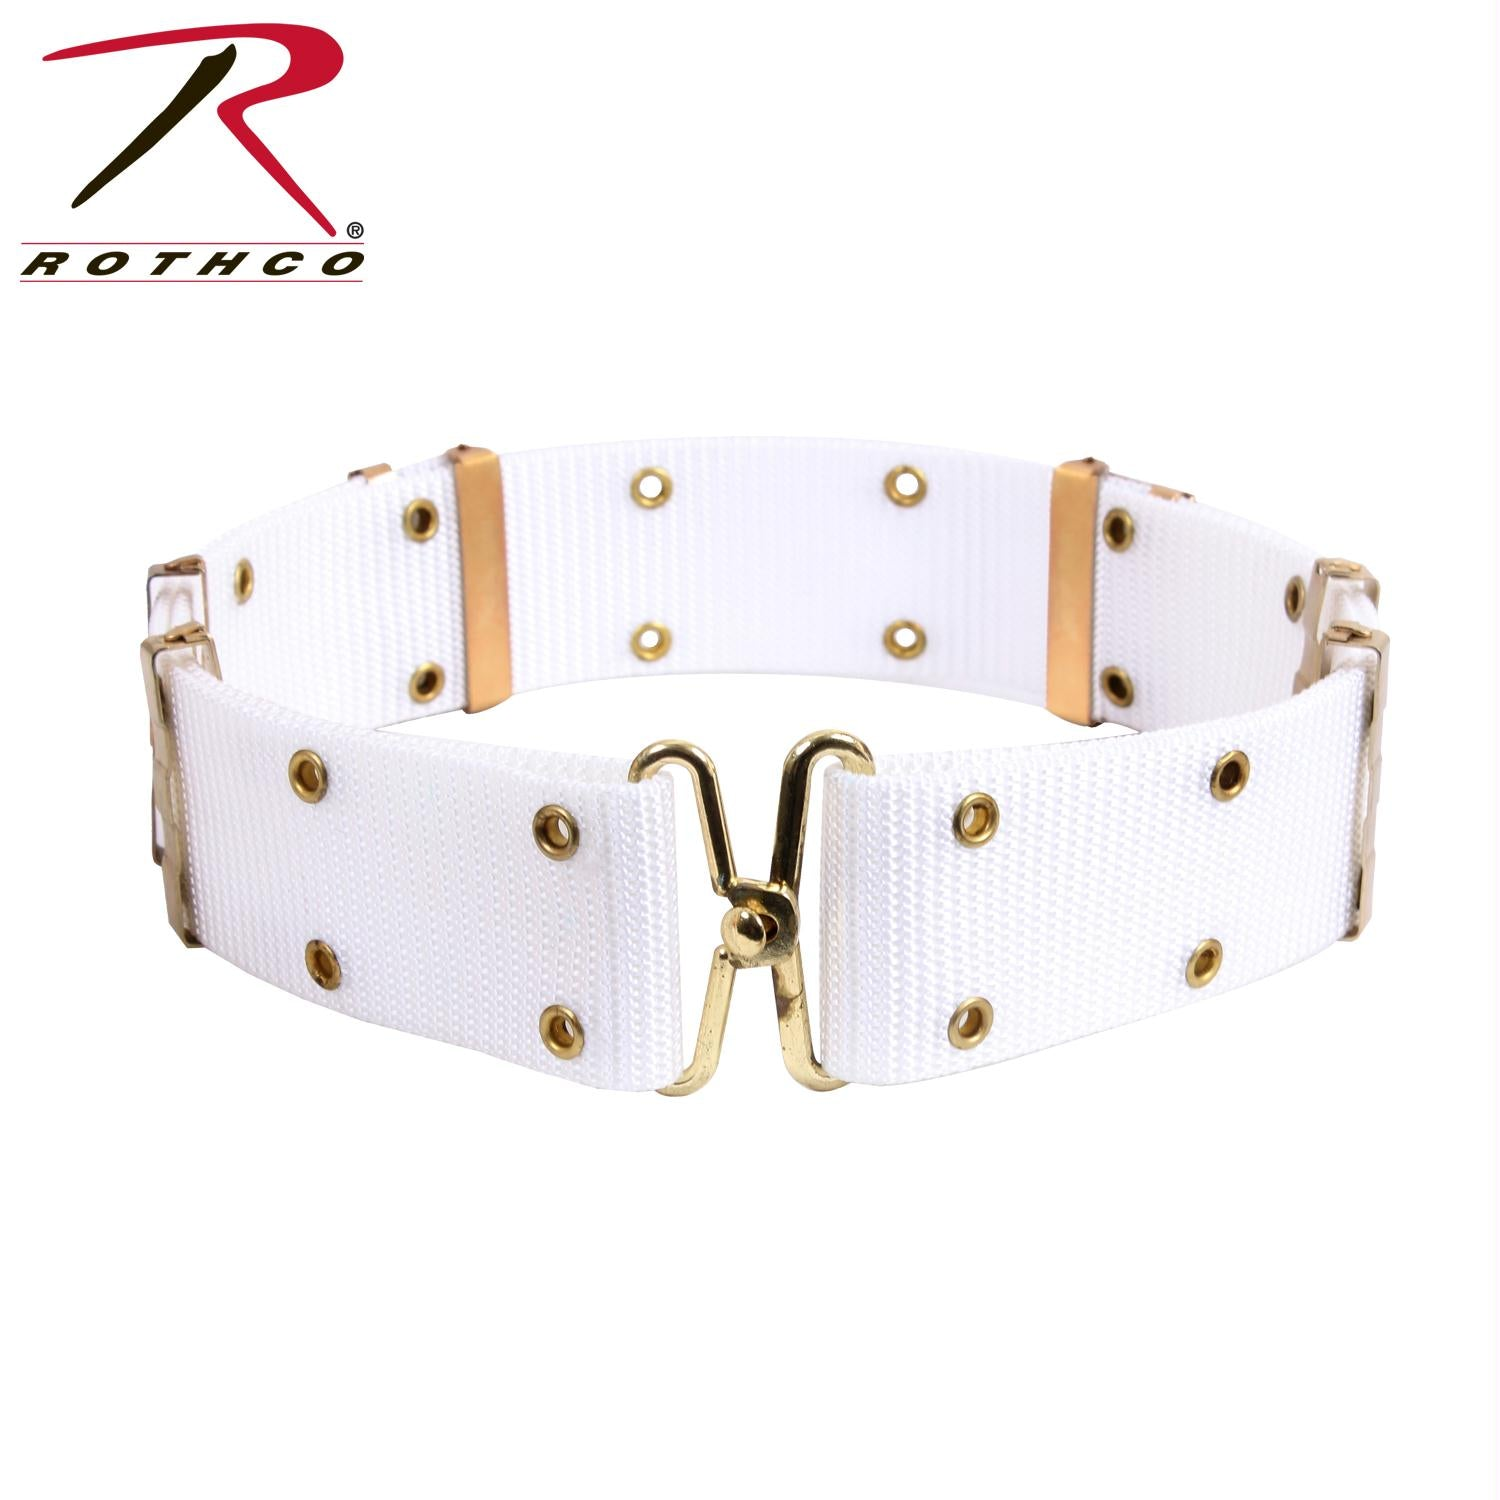 Rothco GI Style Pistol Belt With Metal Buckles - White / L